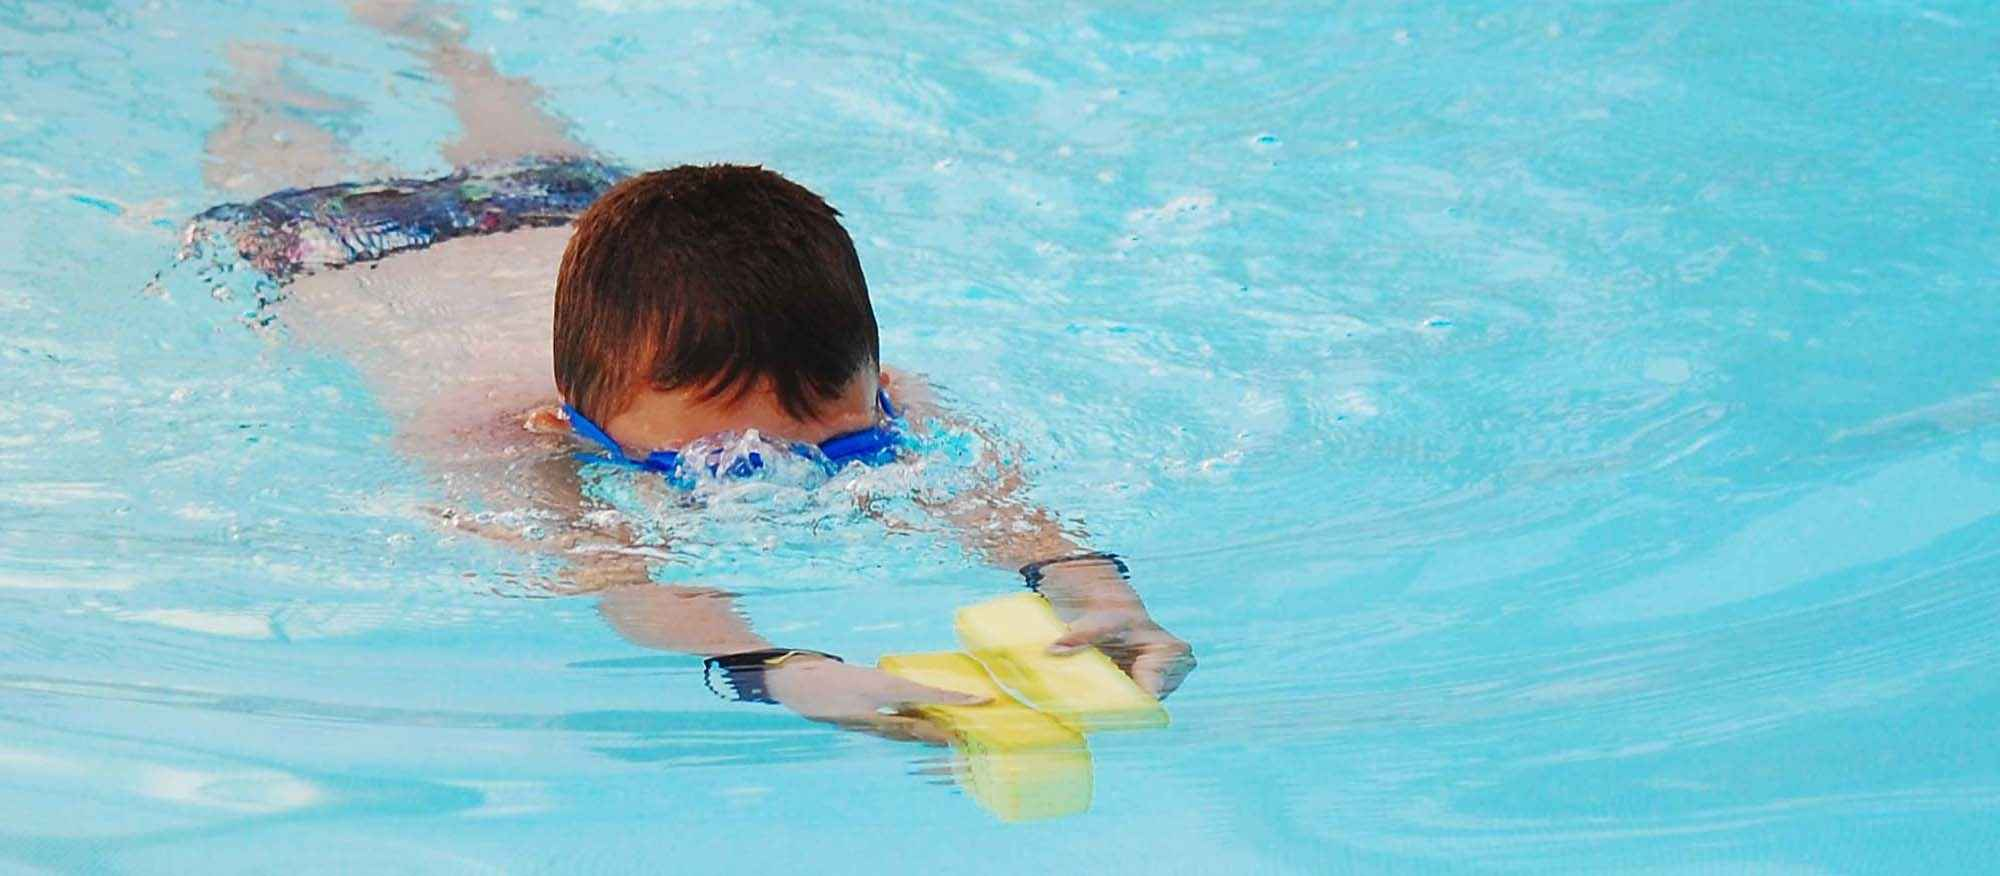 B_Cours natation